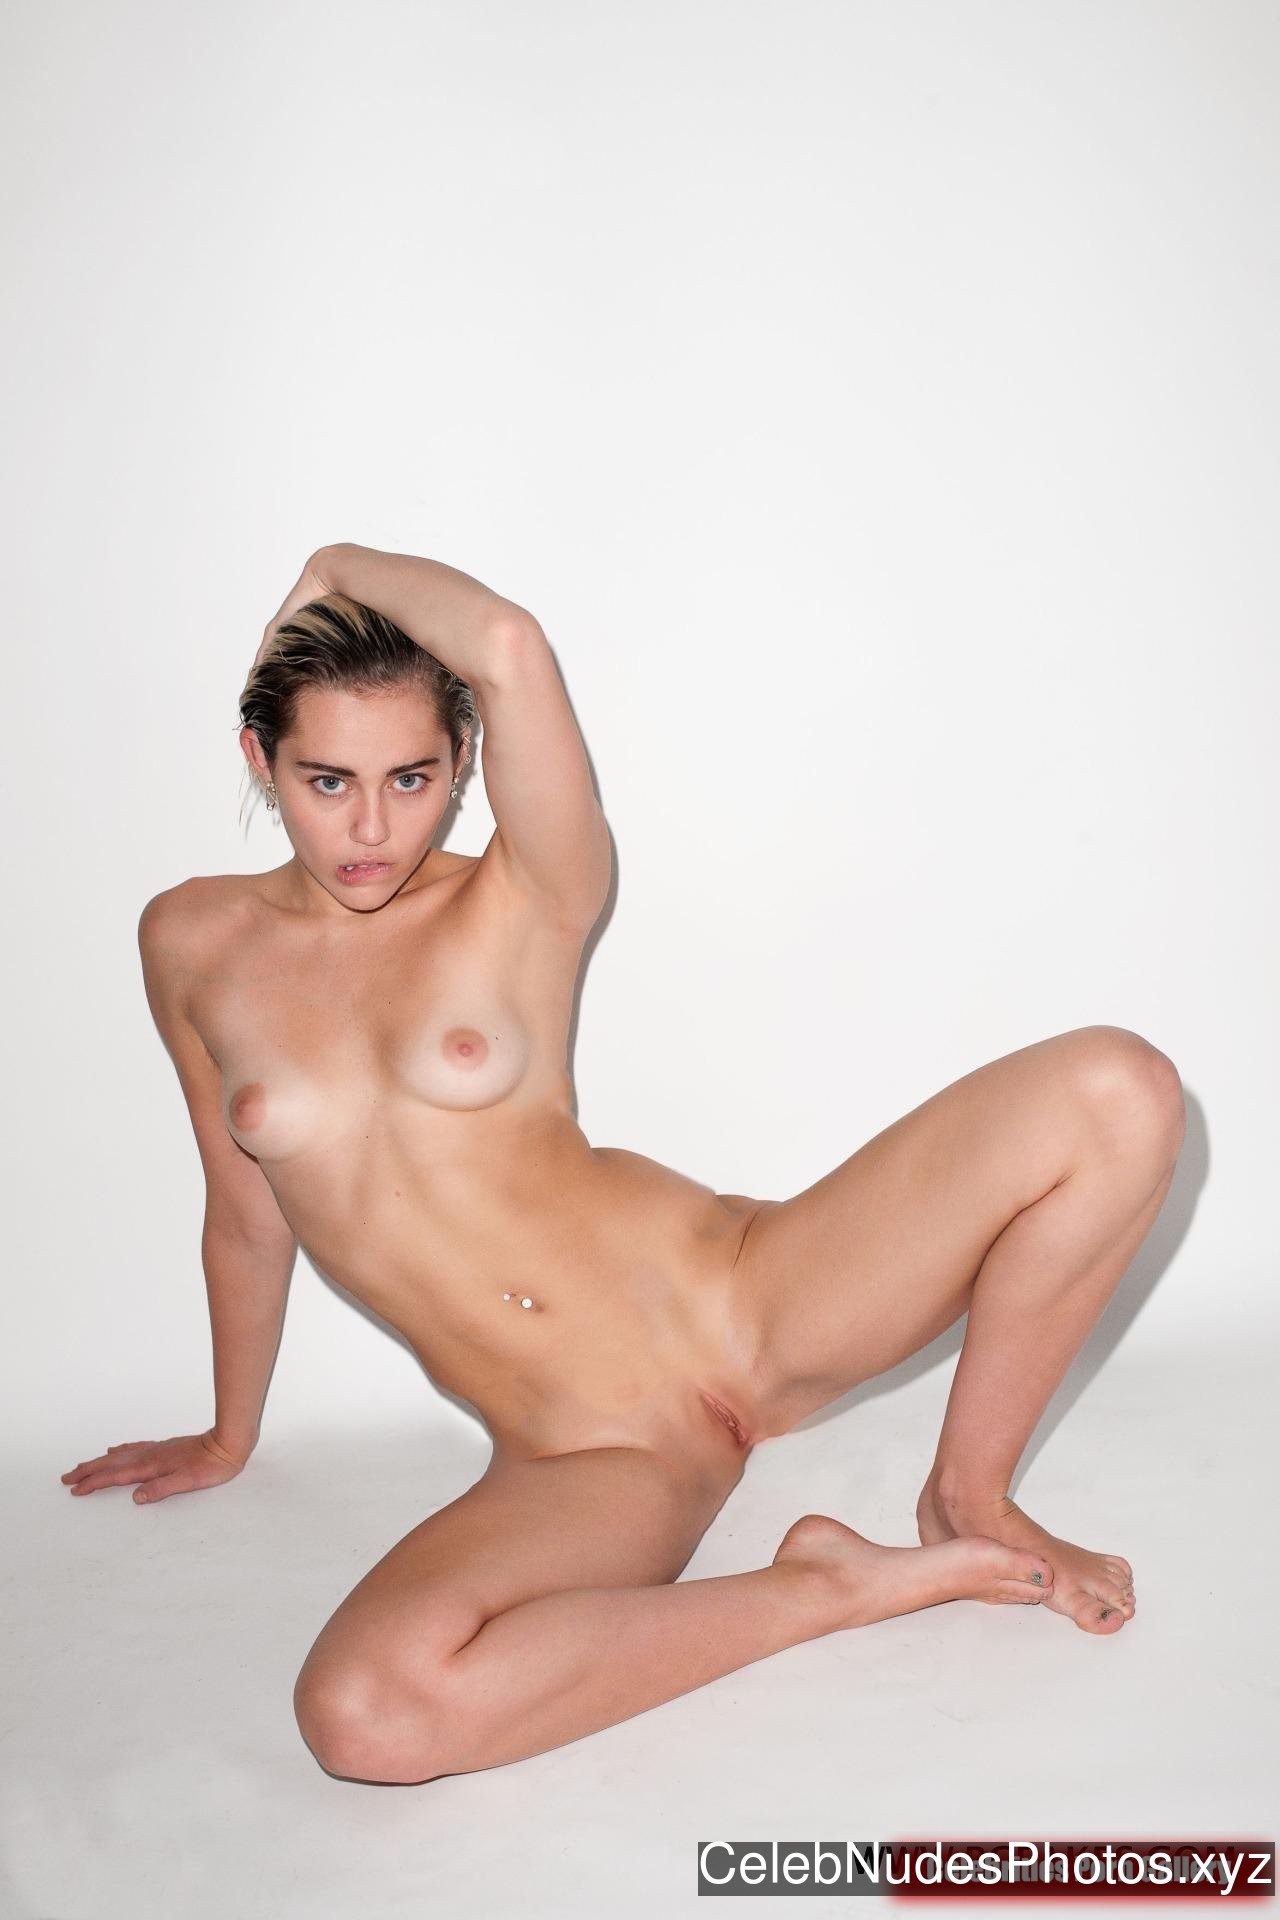 miley cyrus leaked nudes